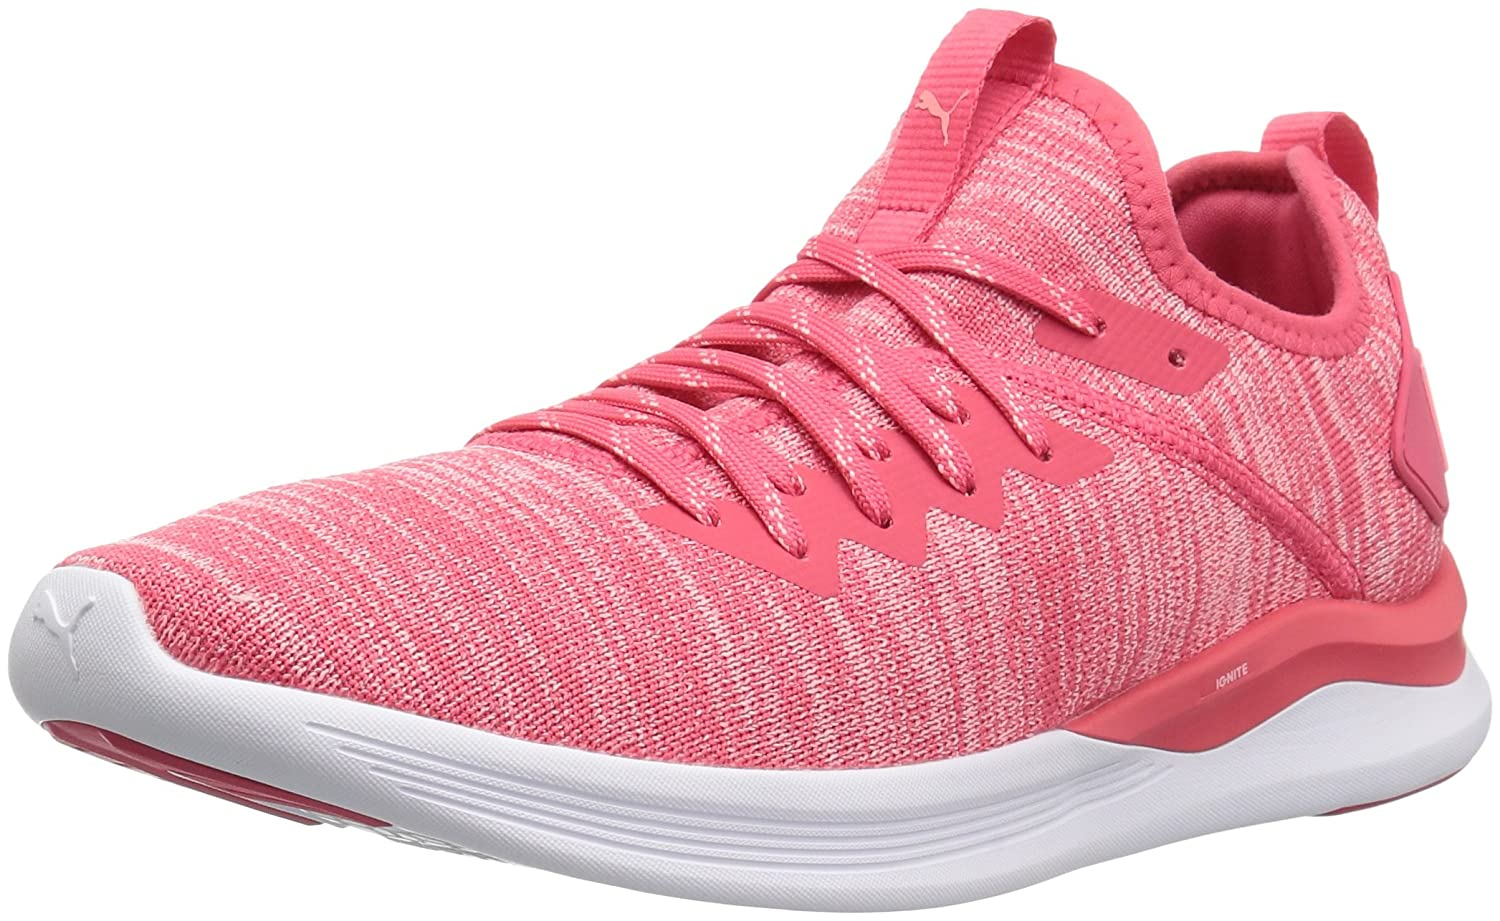 PUMA Women's Ignite Flash Evoknit Wn Sneaker B0721KG7HY 9.5 M US|Paradise Pink-soft Fluo Peach